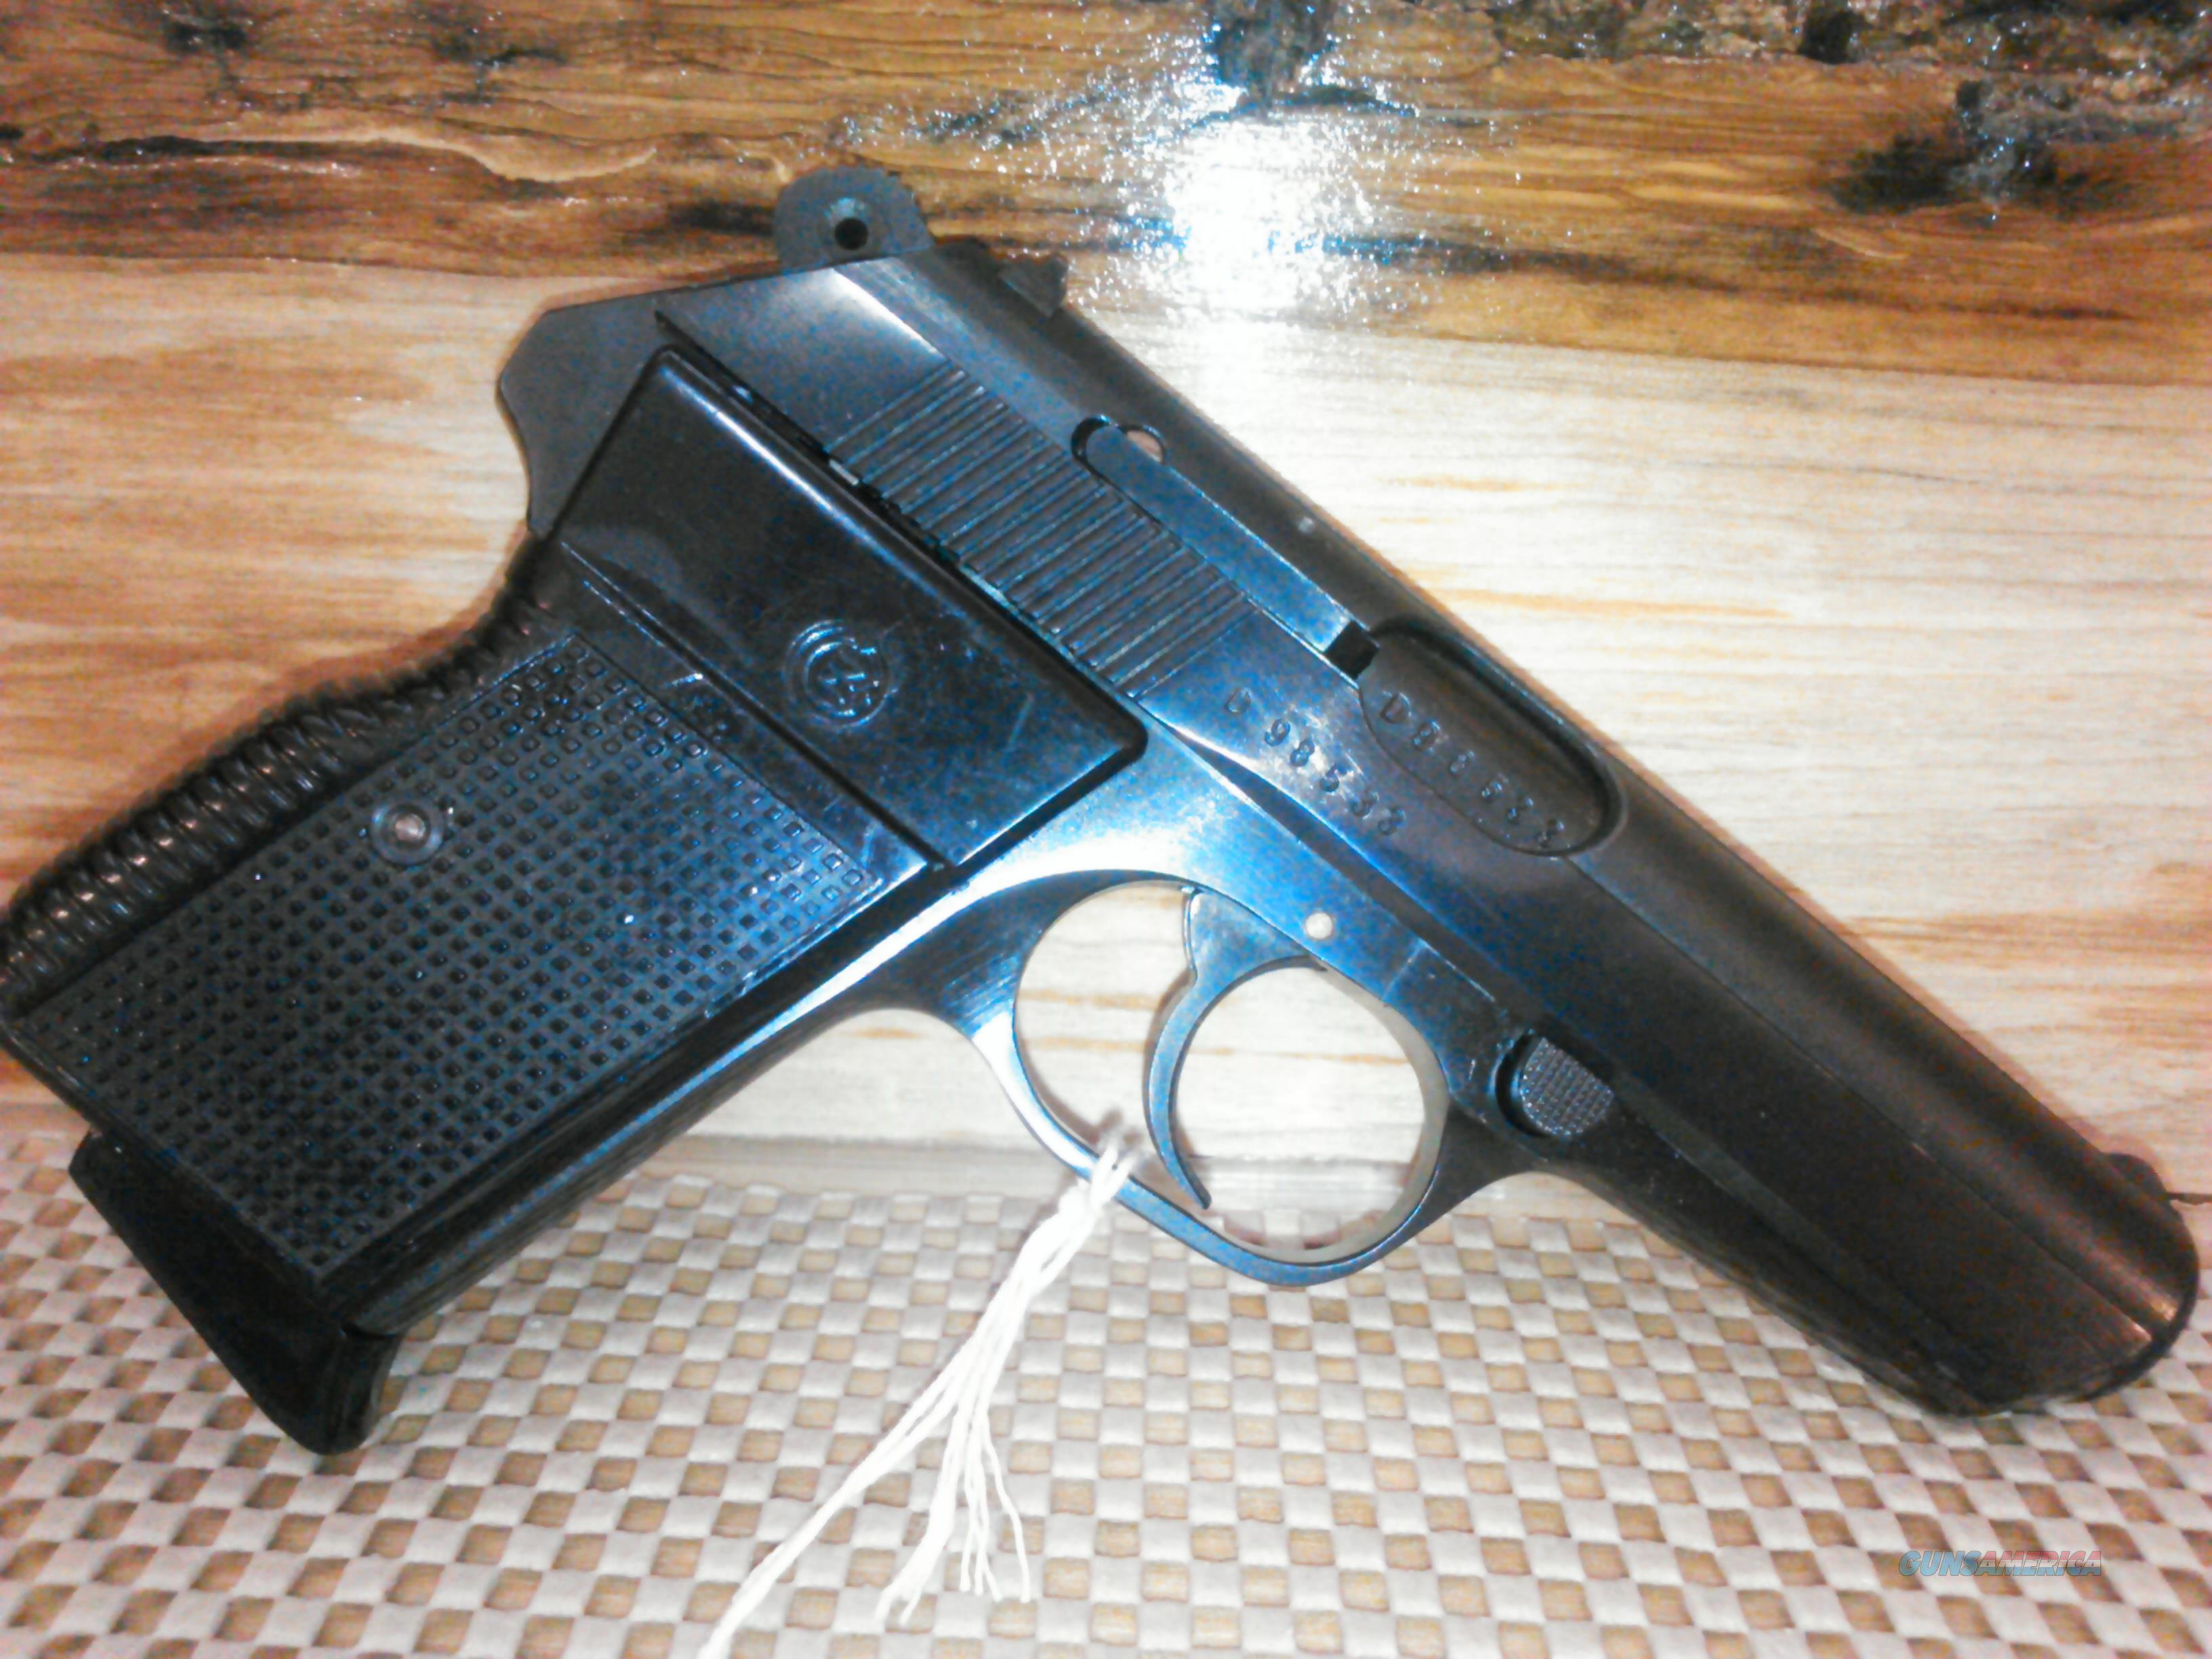 CZ 70  7.65 BROWNING / 32ACP VZOR 70  1-8RD MAG EXCELLENT, FREE SHIPPING NO CC FEE  Guns > Pistols > CZ Pistols